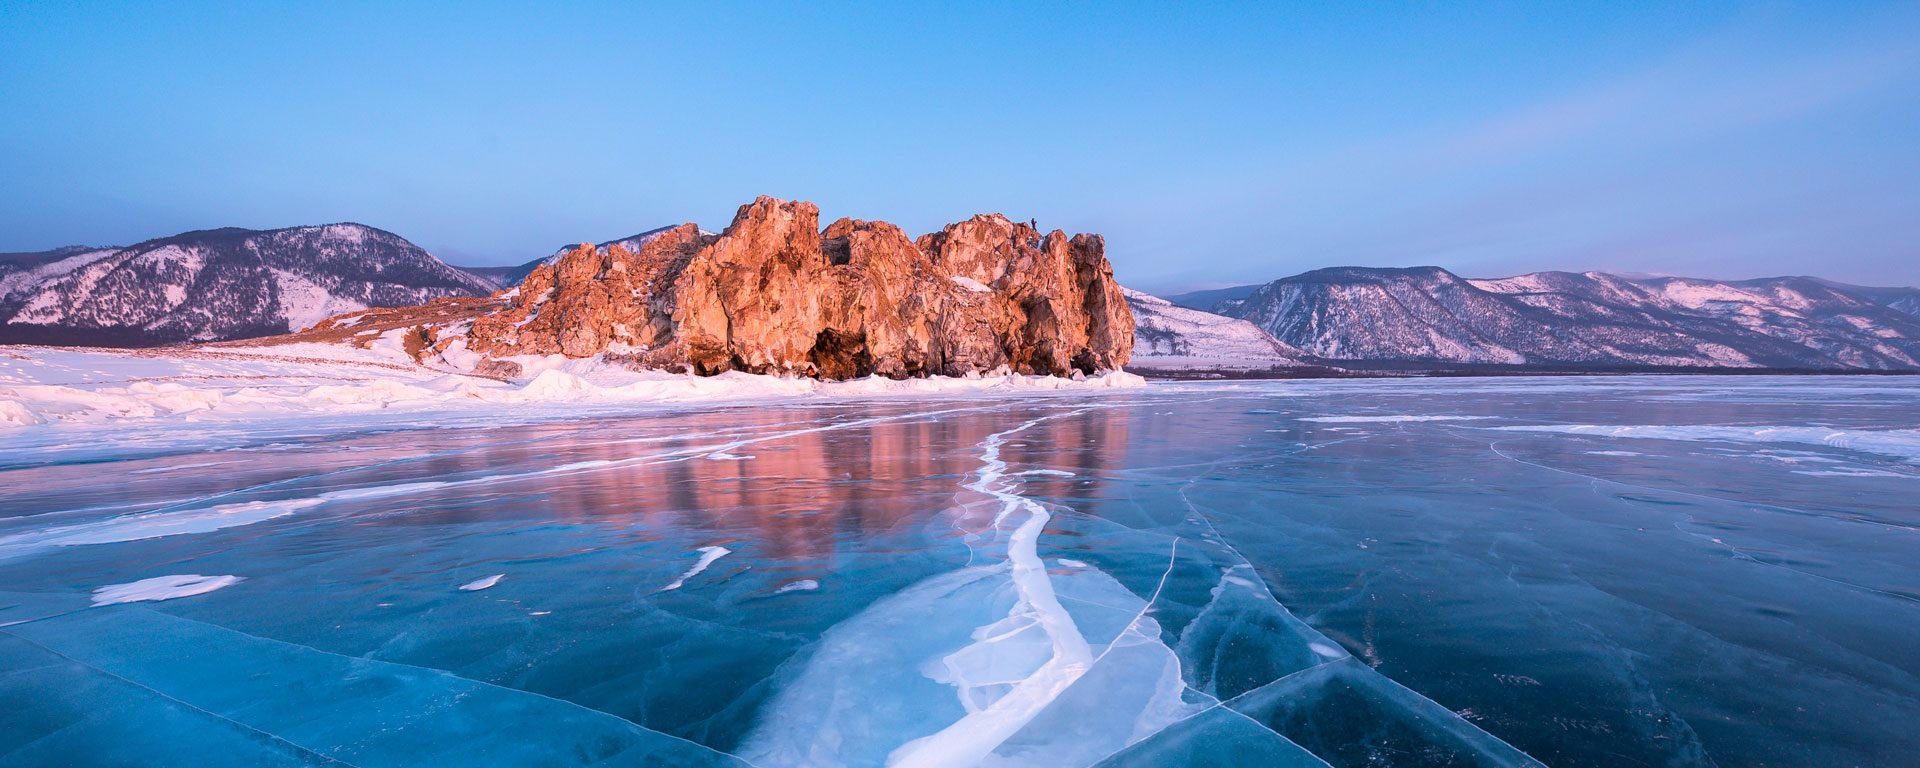 Cracks along the ice on frozen Lake Baikal in Siberia, Russia